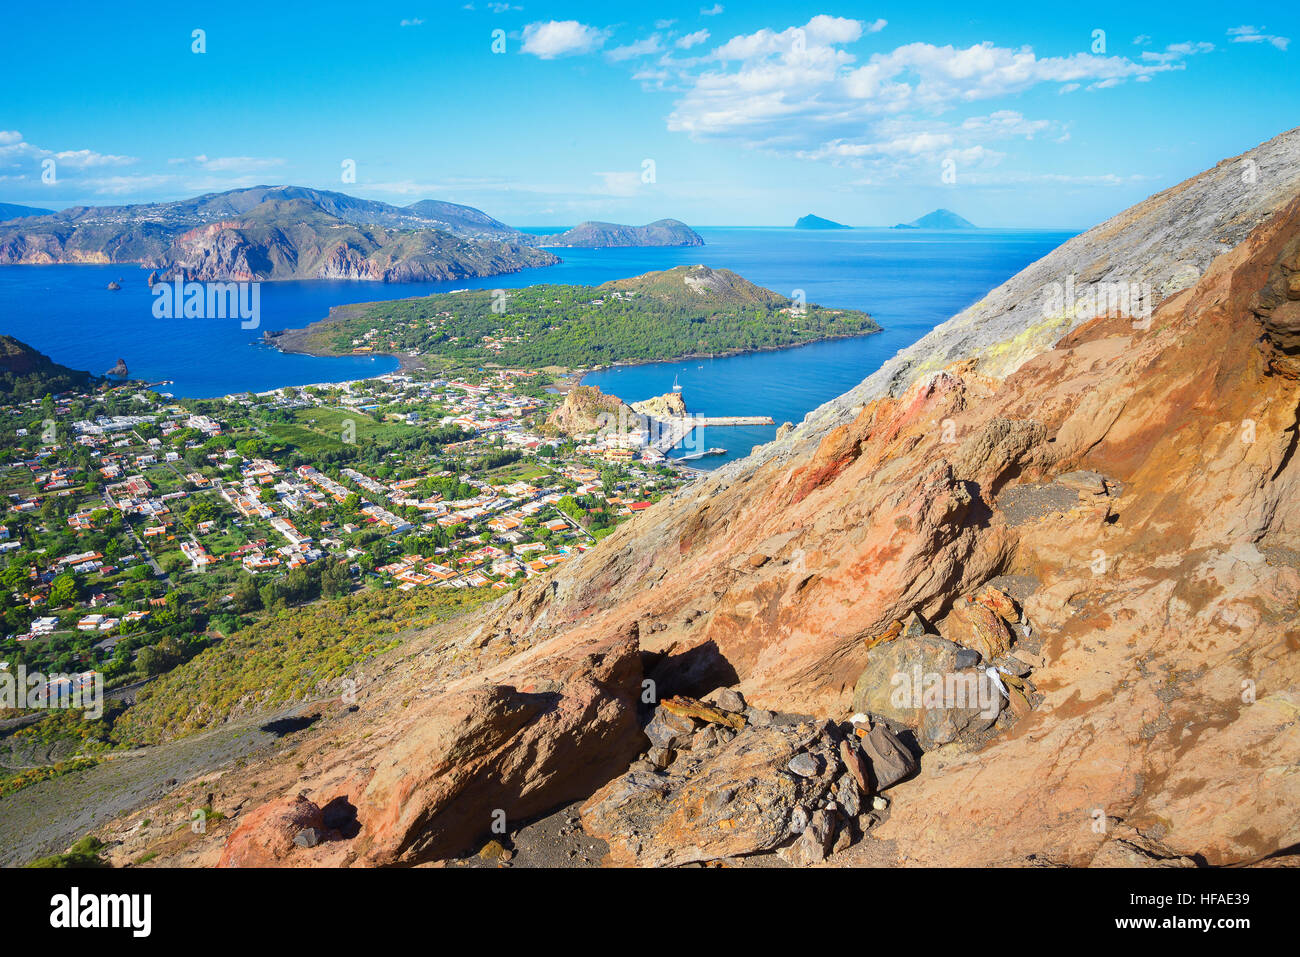 Porto di Levante and Vulcanello view, Aelolian Islands in the background, Vulcano Island, Aeolian Islands, UNESCO - Stock Image